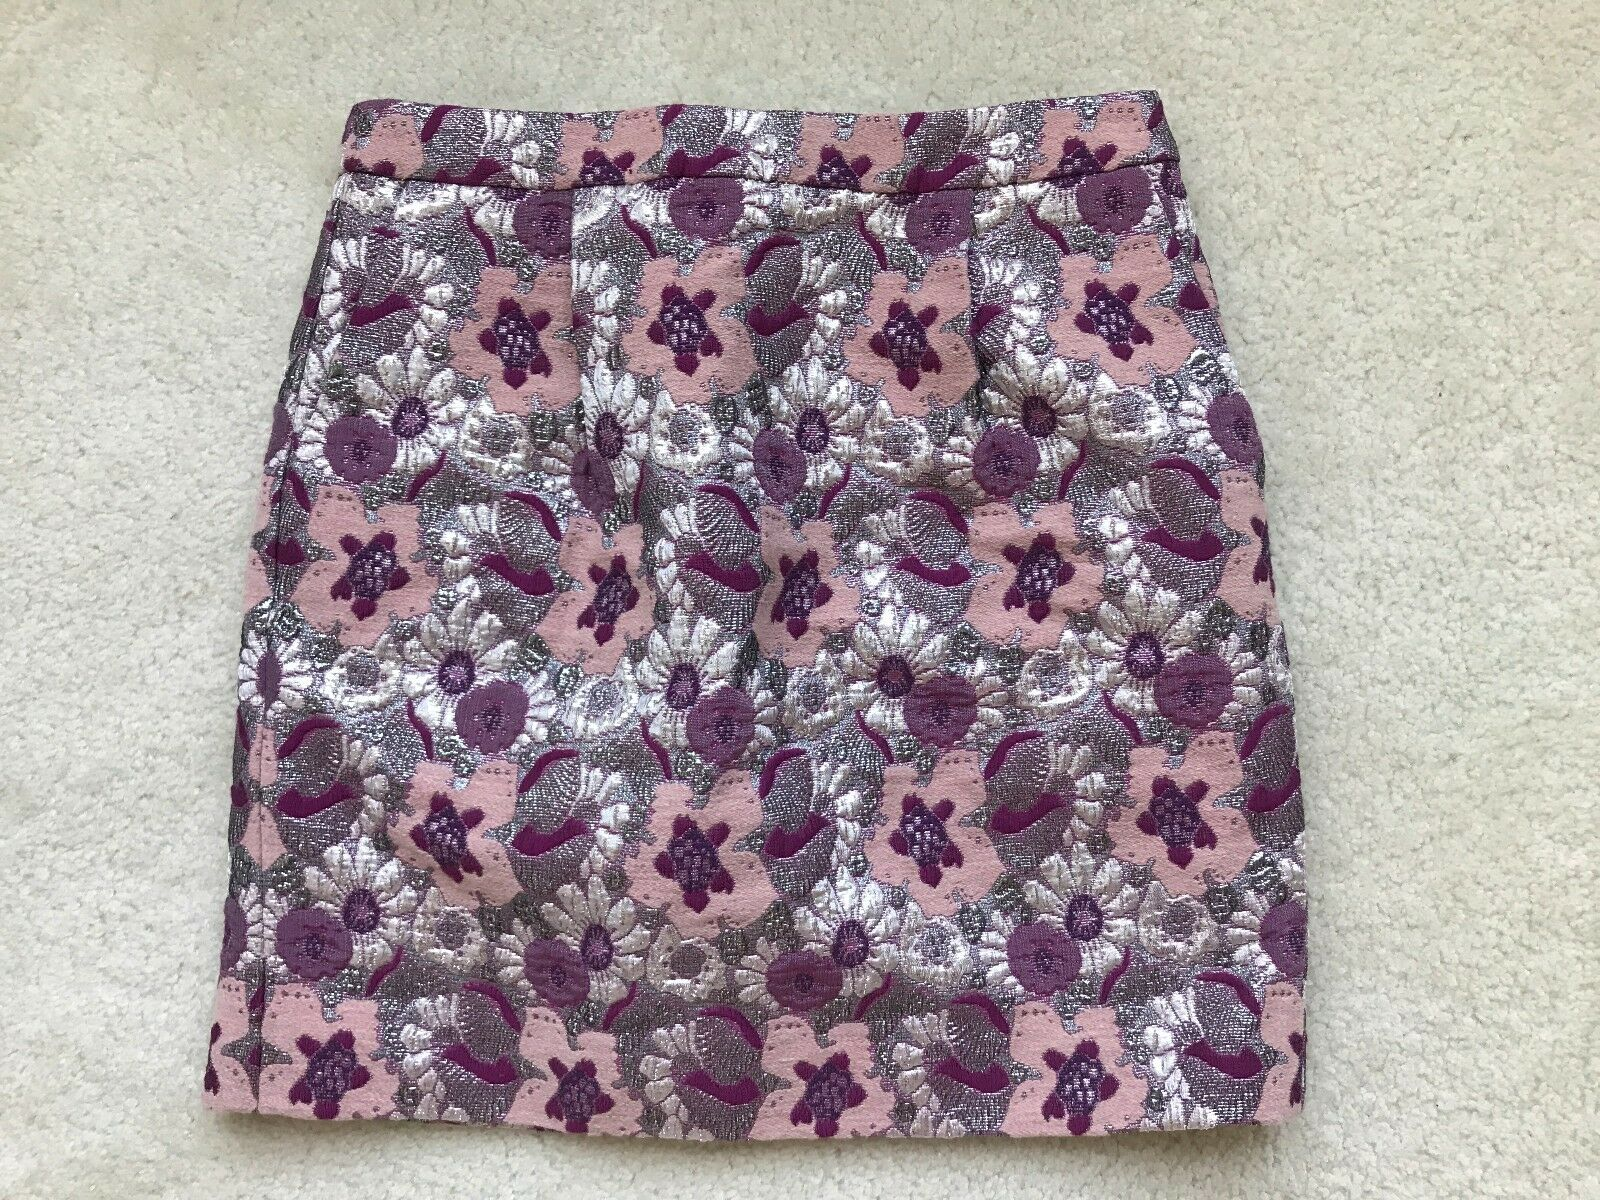 New Women J.Crew Collection Floral Pencil Skirt, Size 4